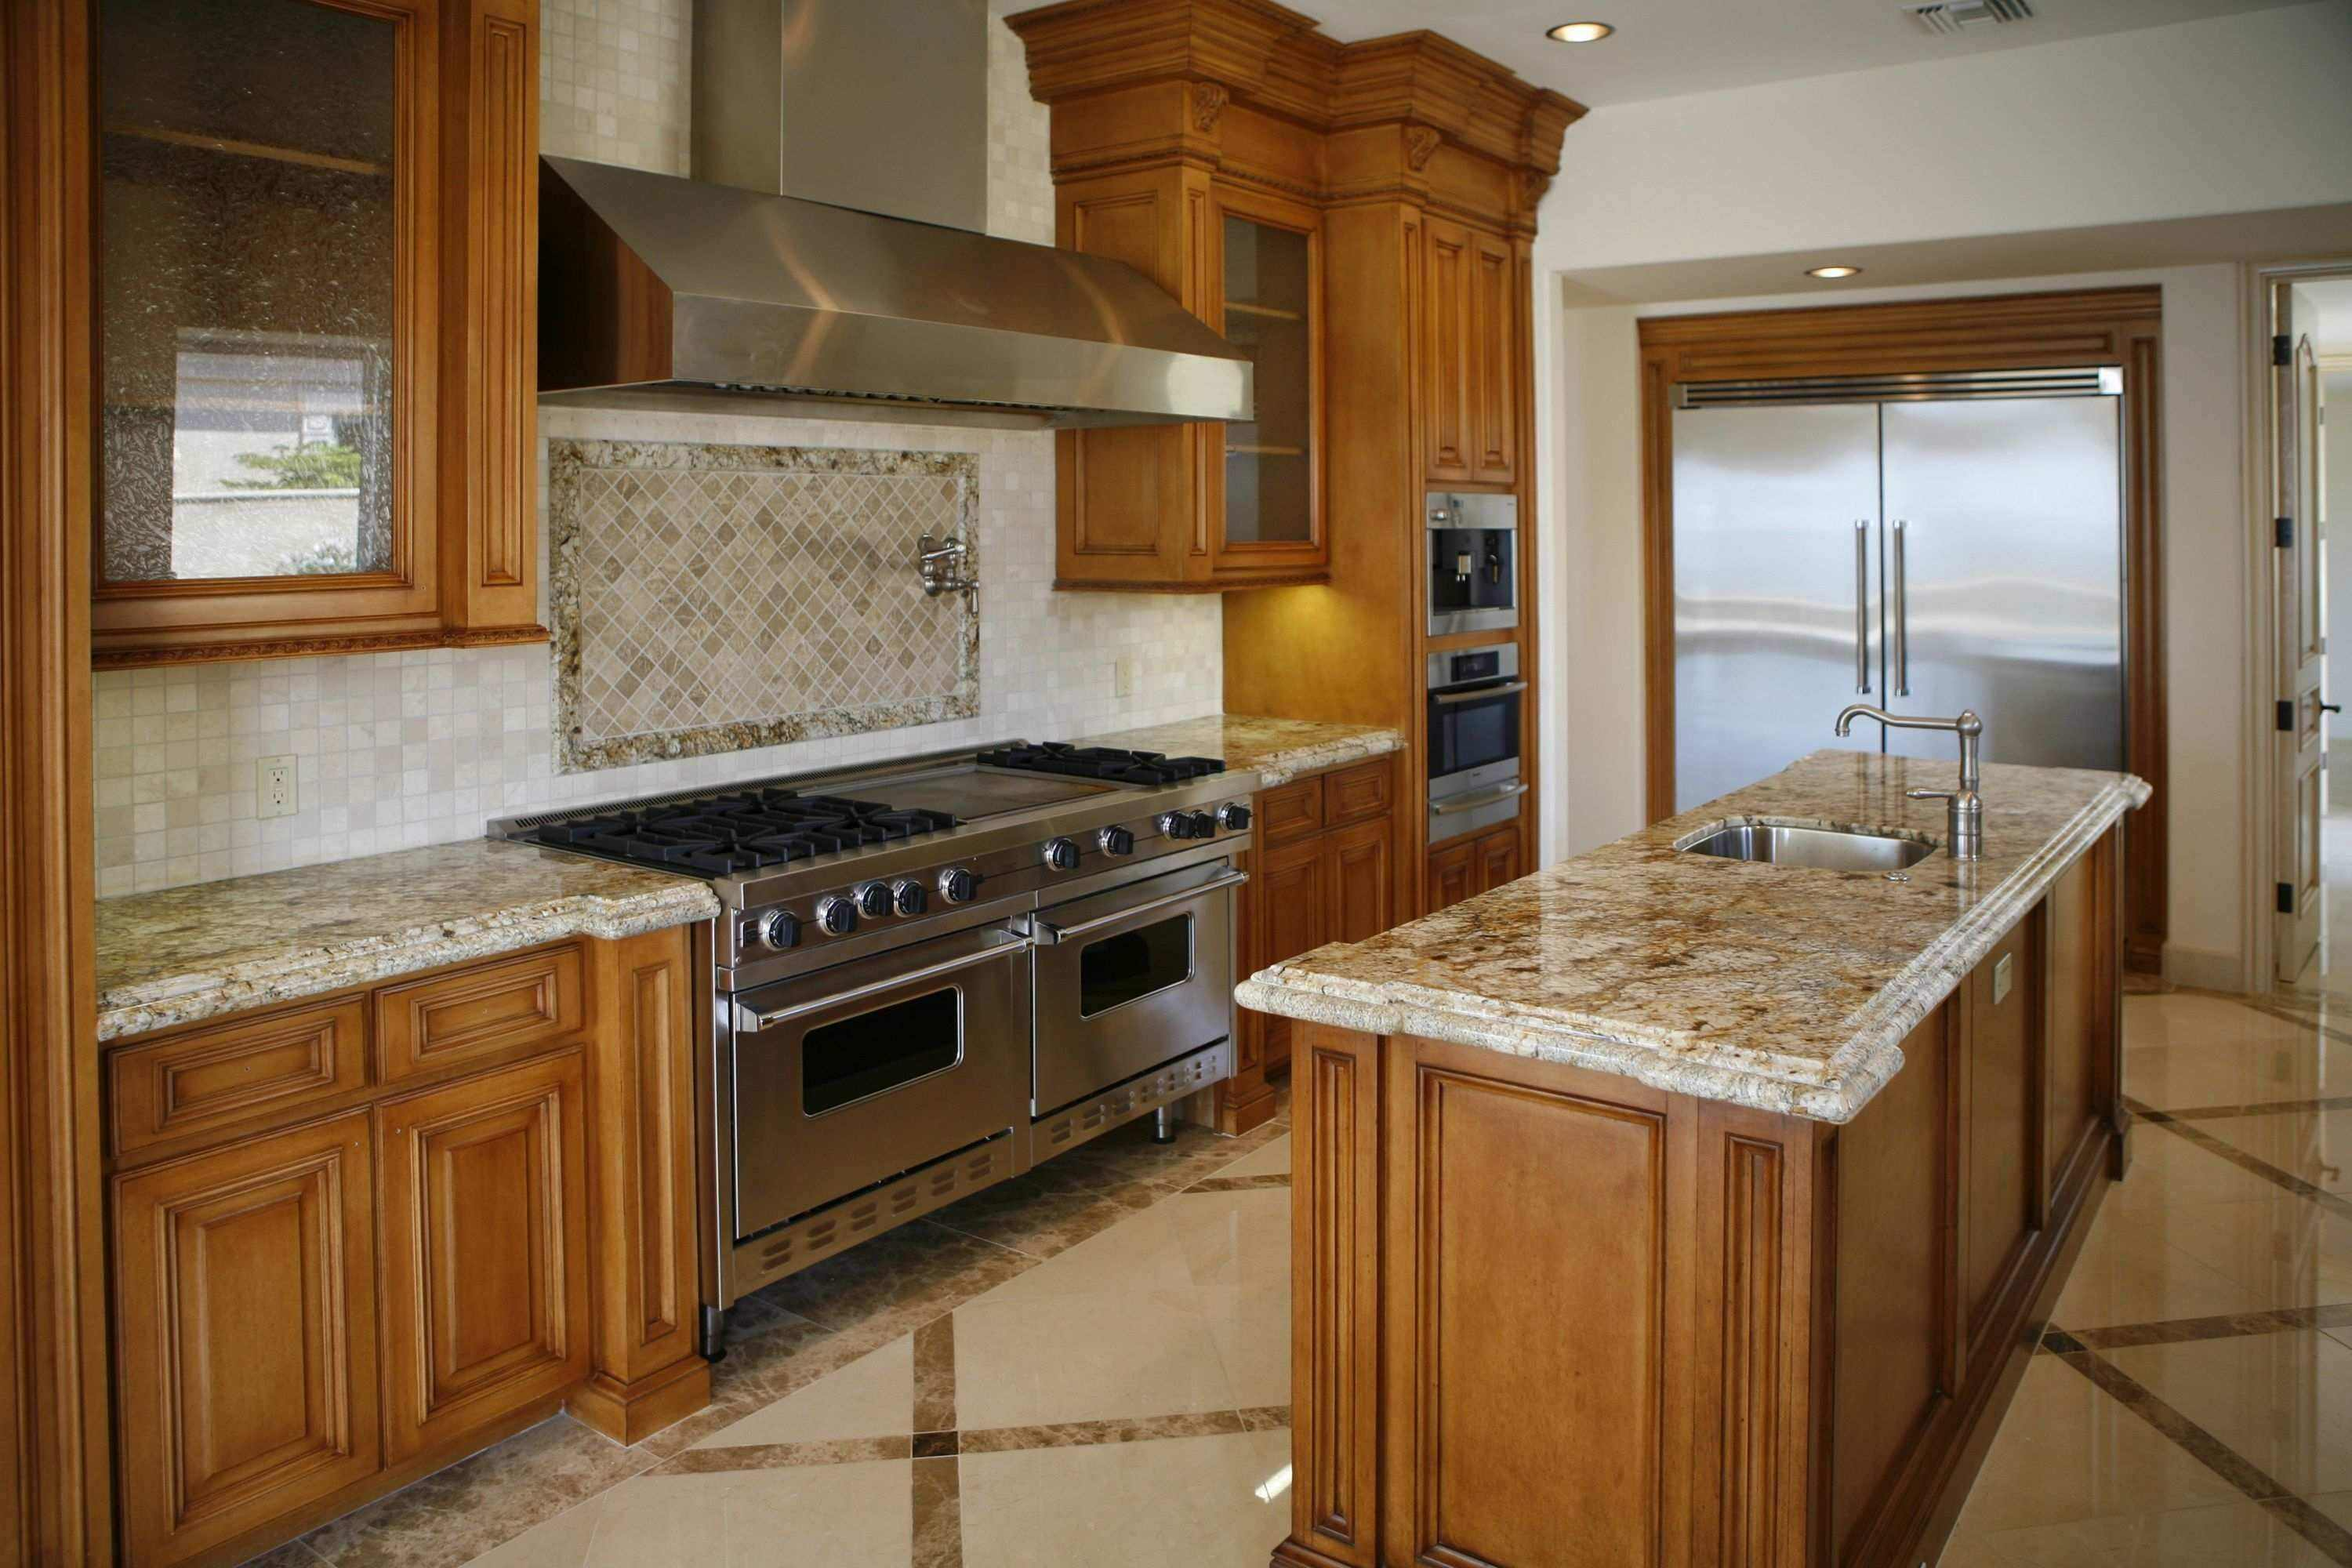 Kitchen armoire cabinets Photo - 9